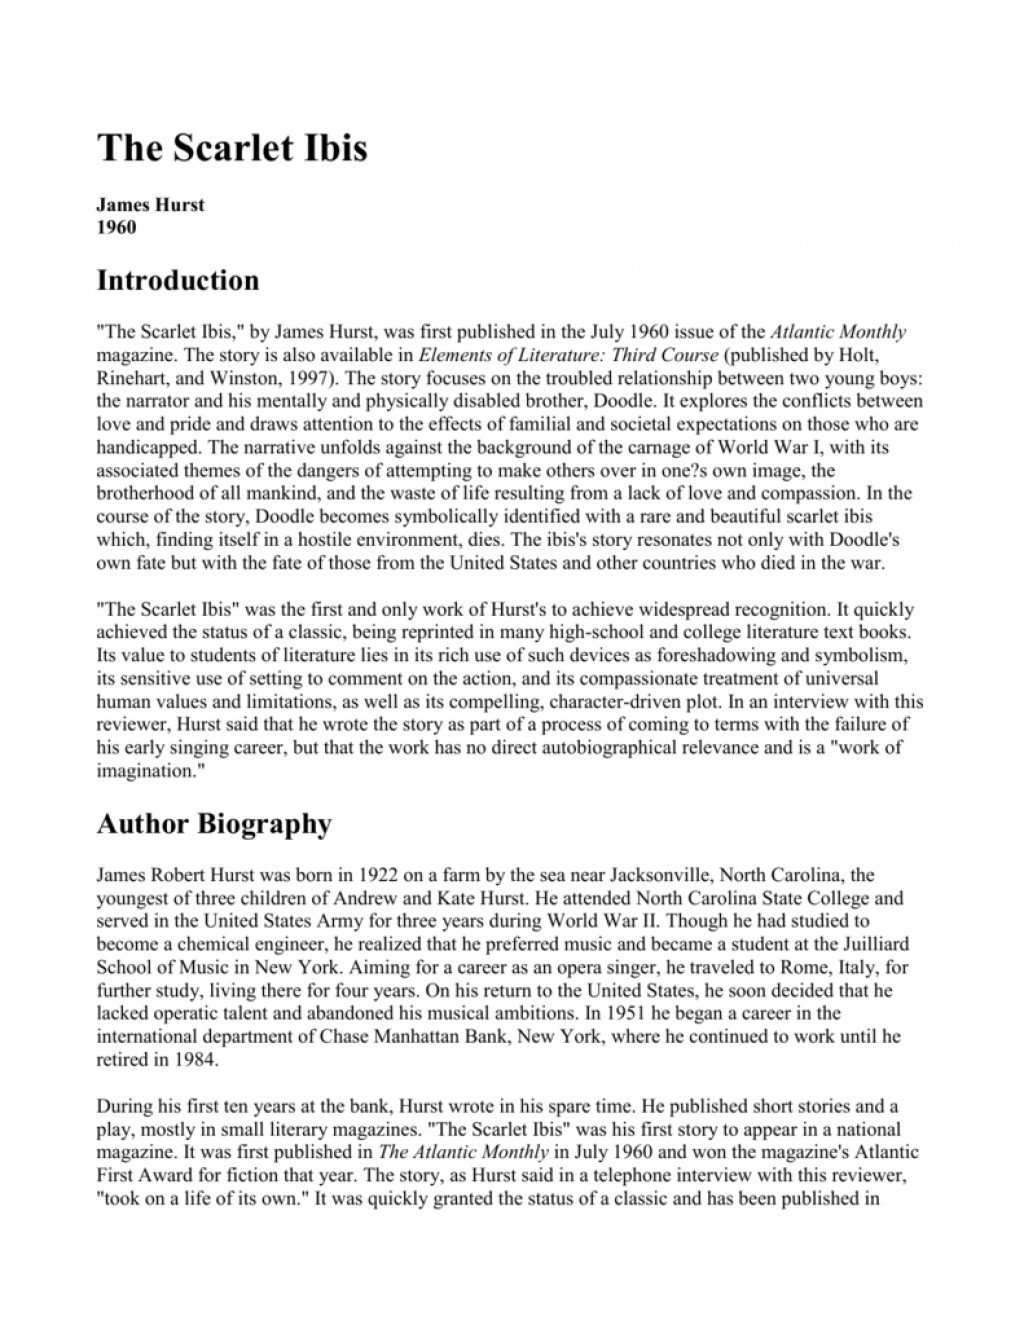 001 The Scarlet Ibis Essay 009067886 1 Best Thesis Questions Discussion Large